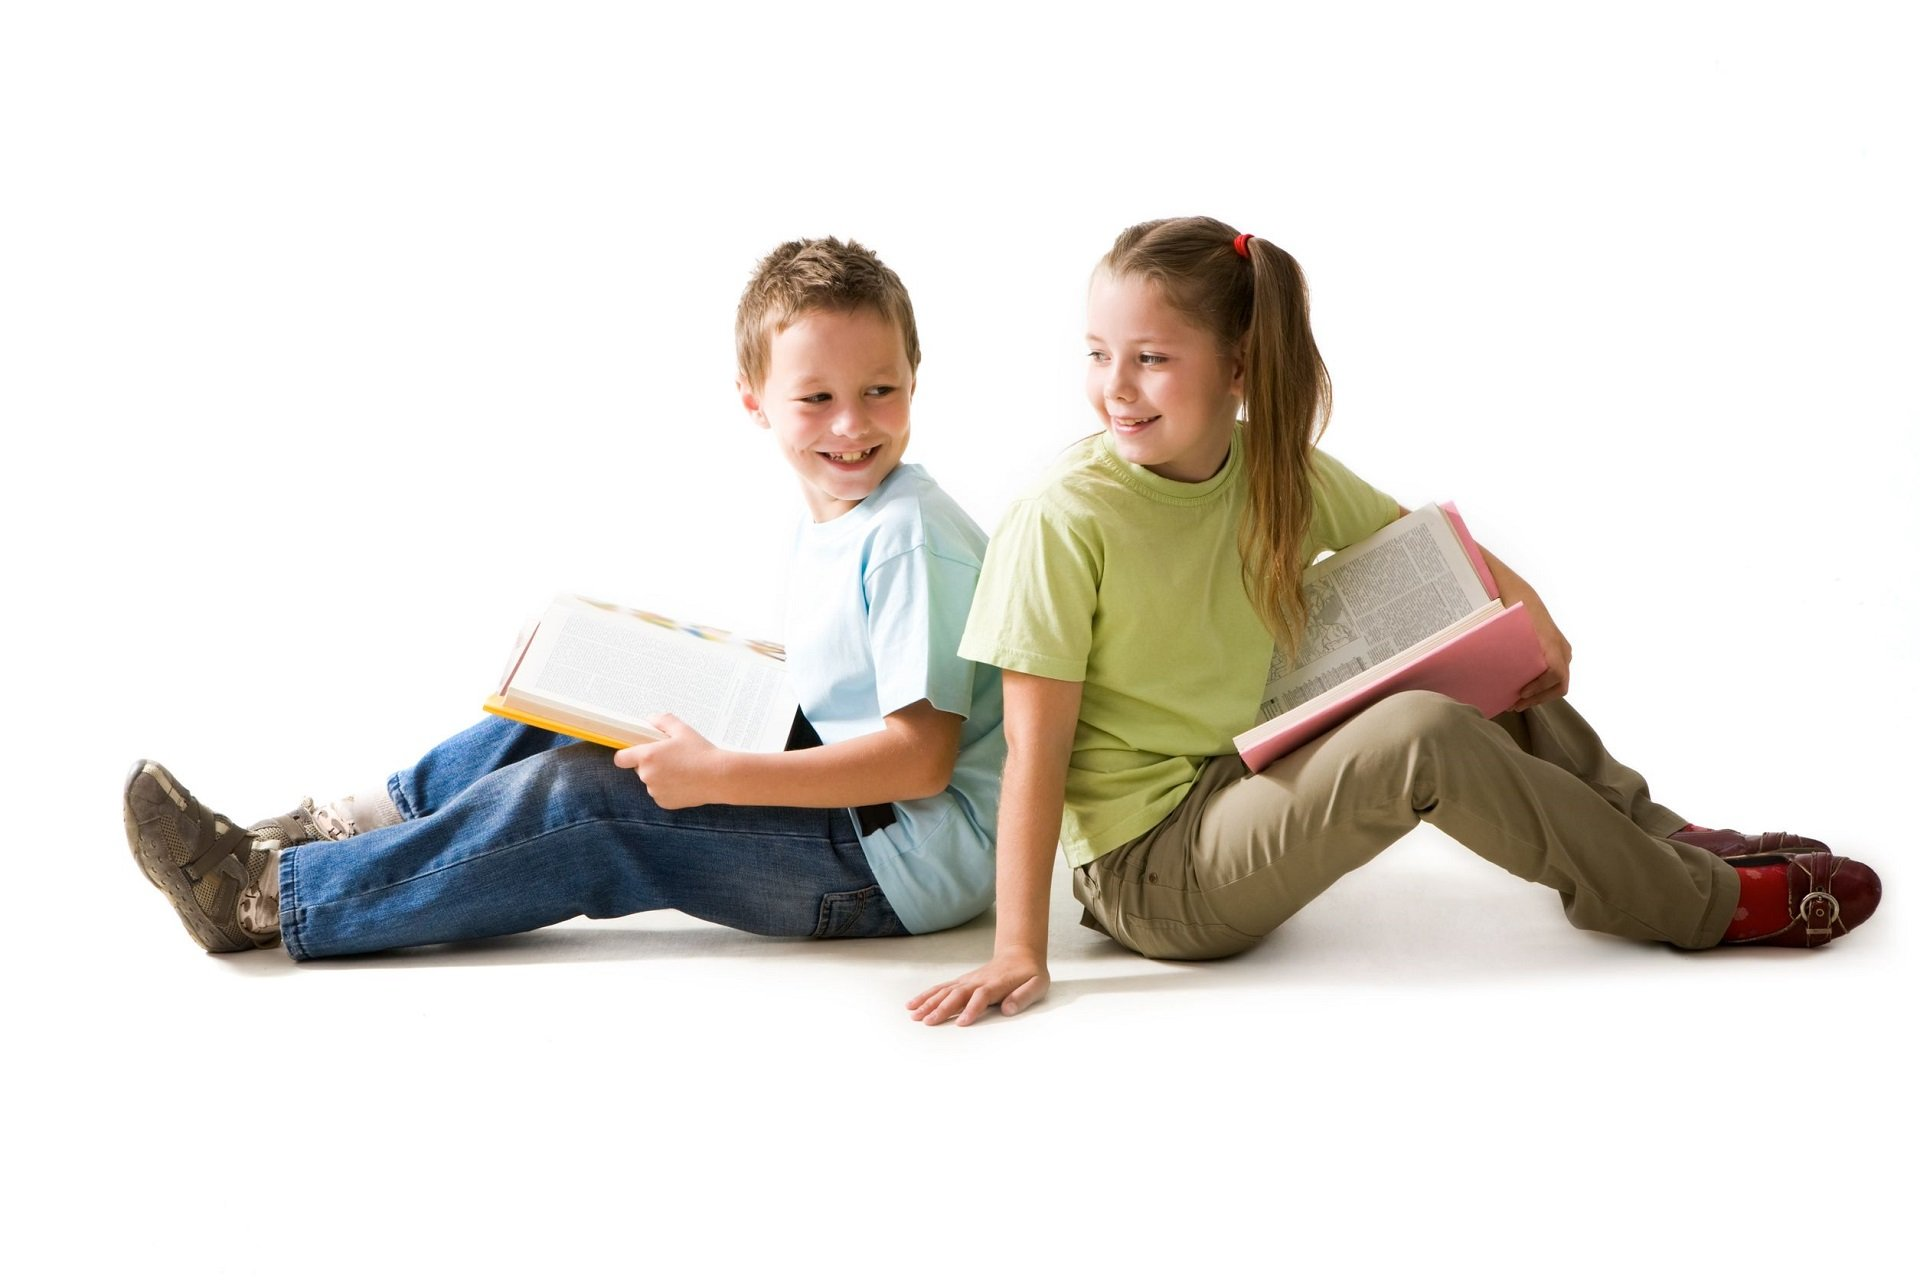 An image of two children reading books